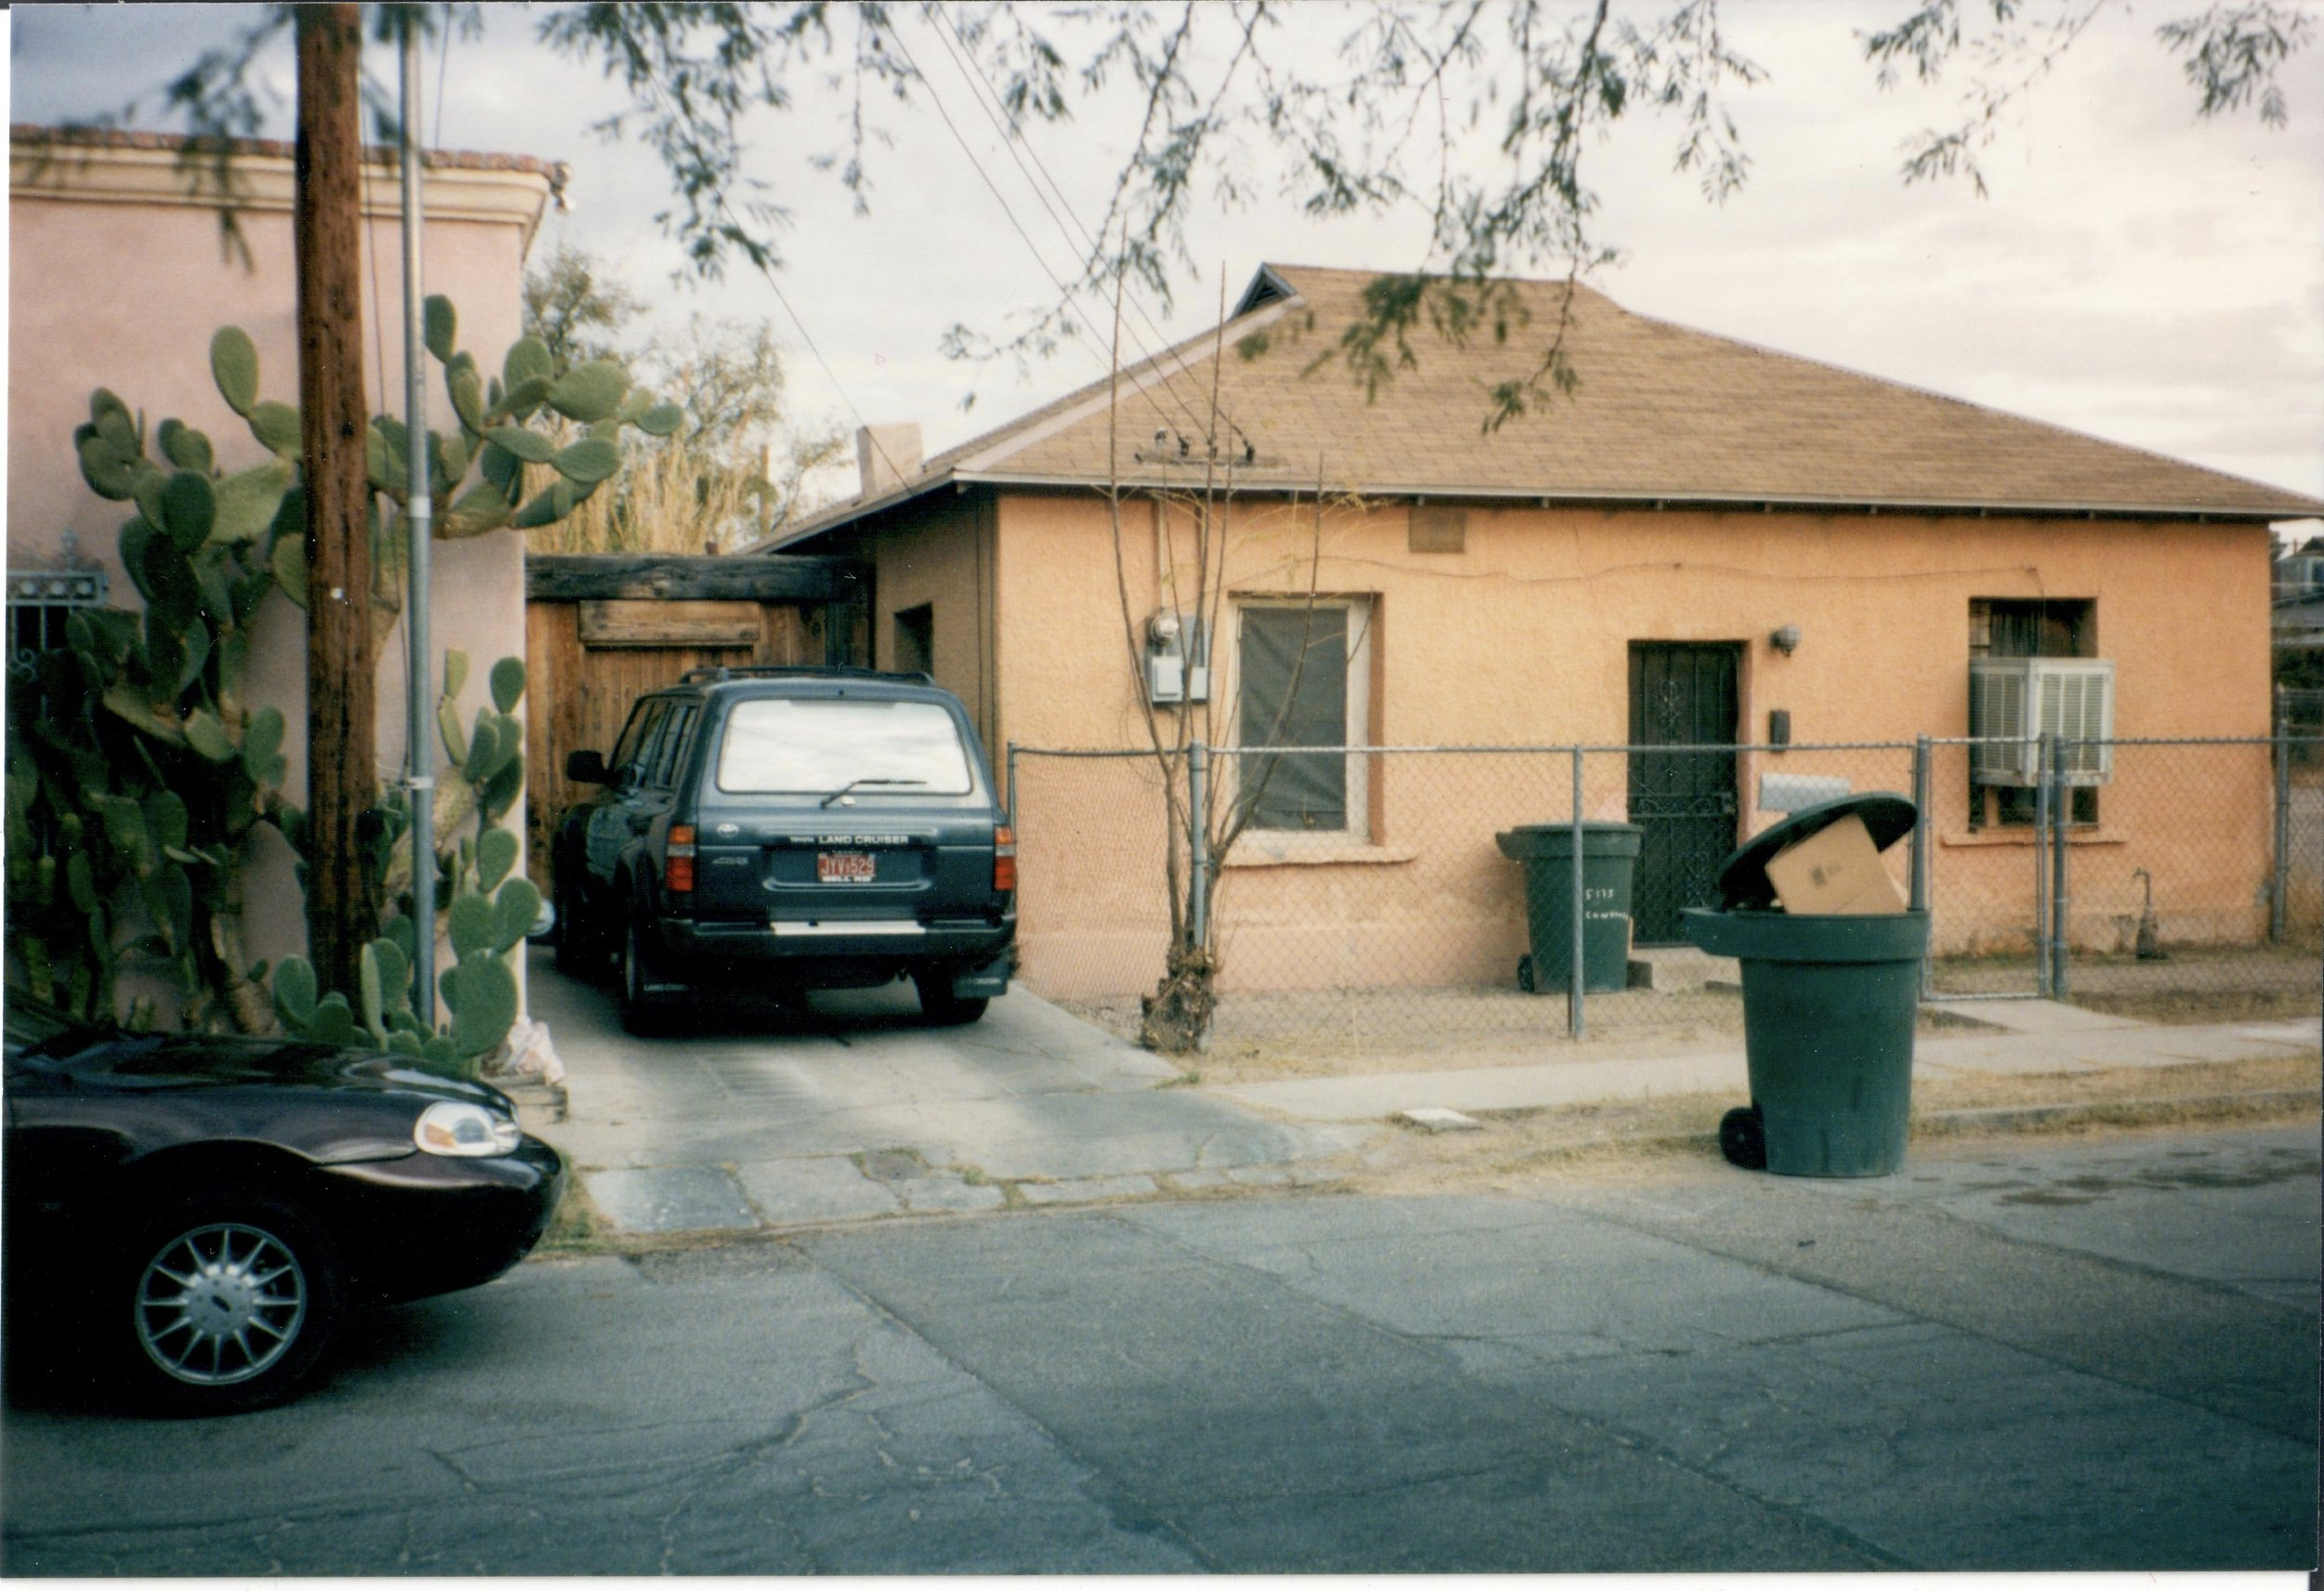 517 S. Convent in December 1999. Time has not been kind to this house.